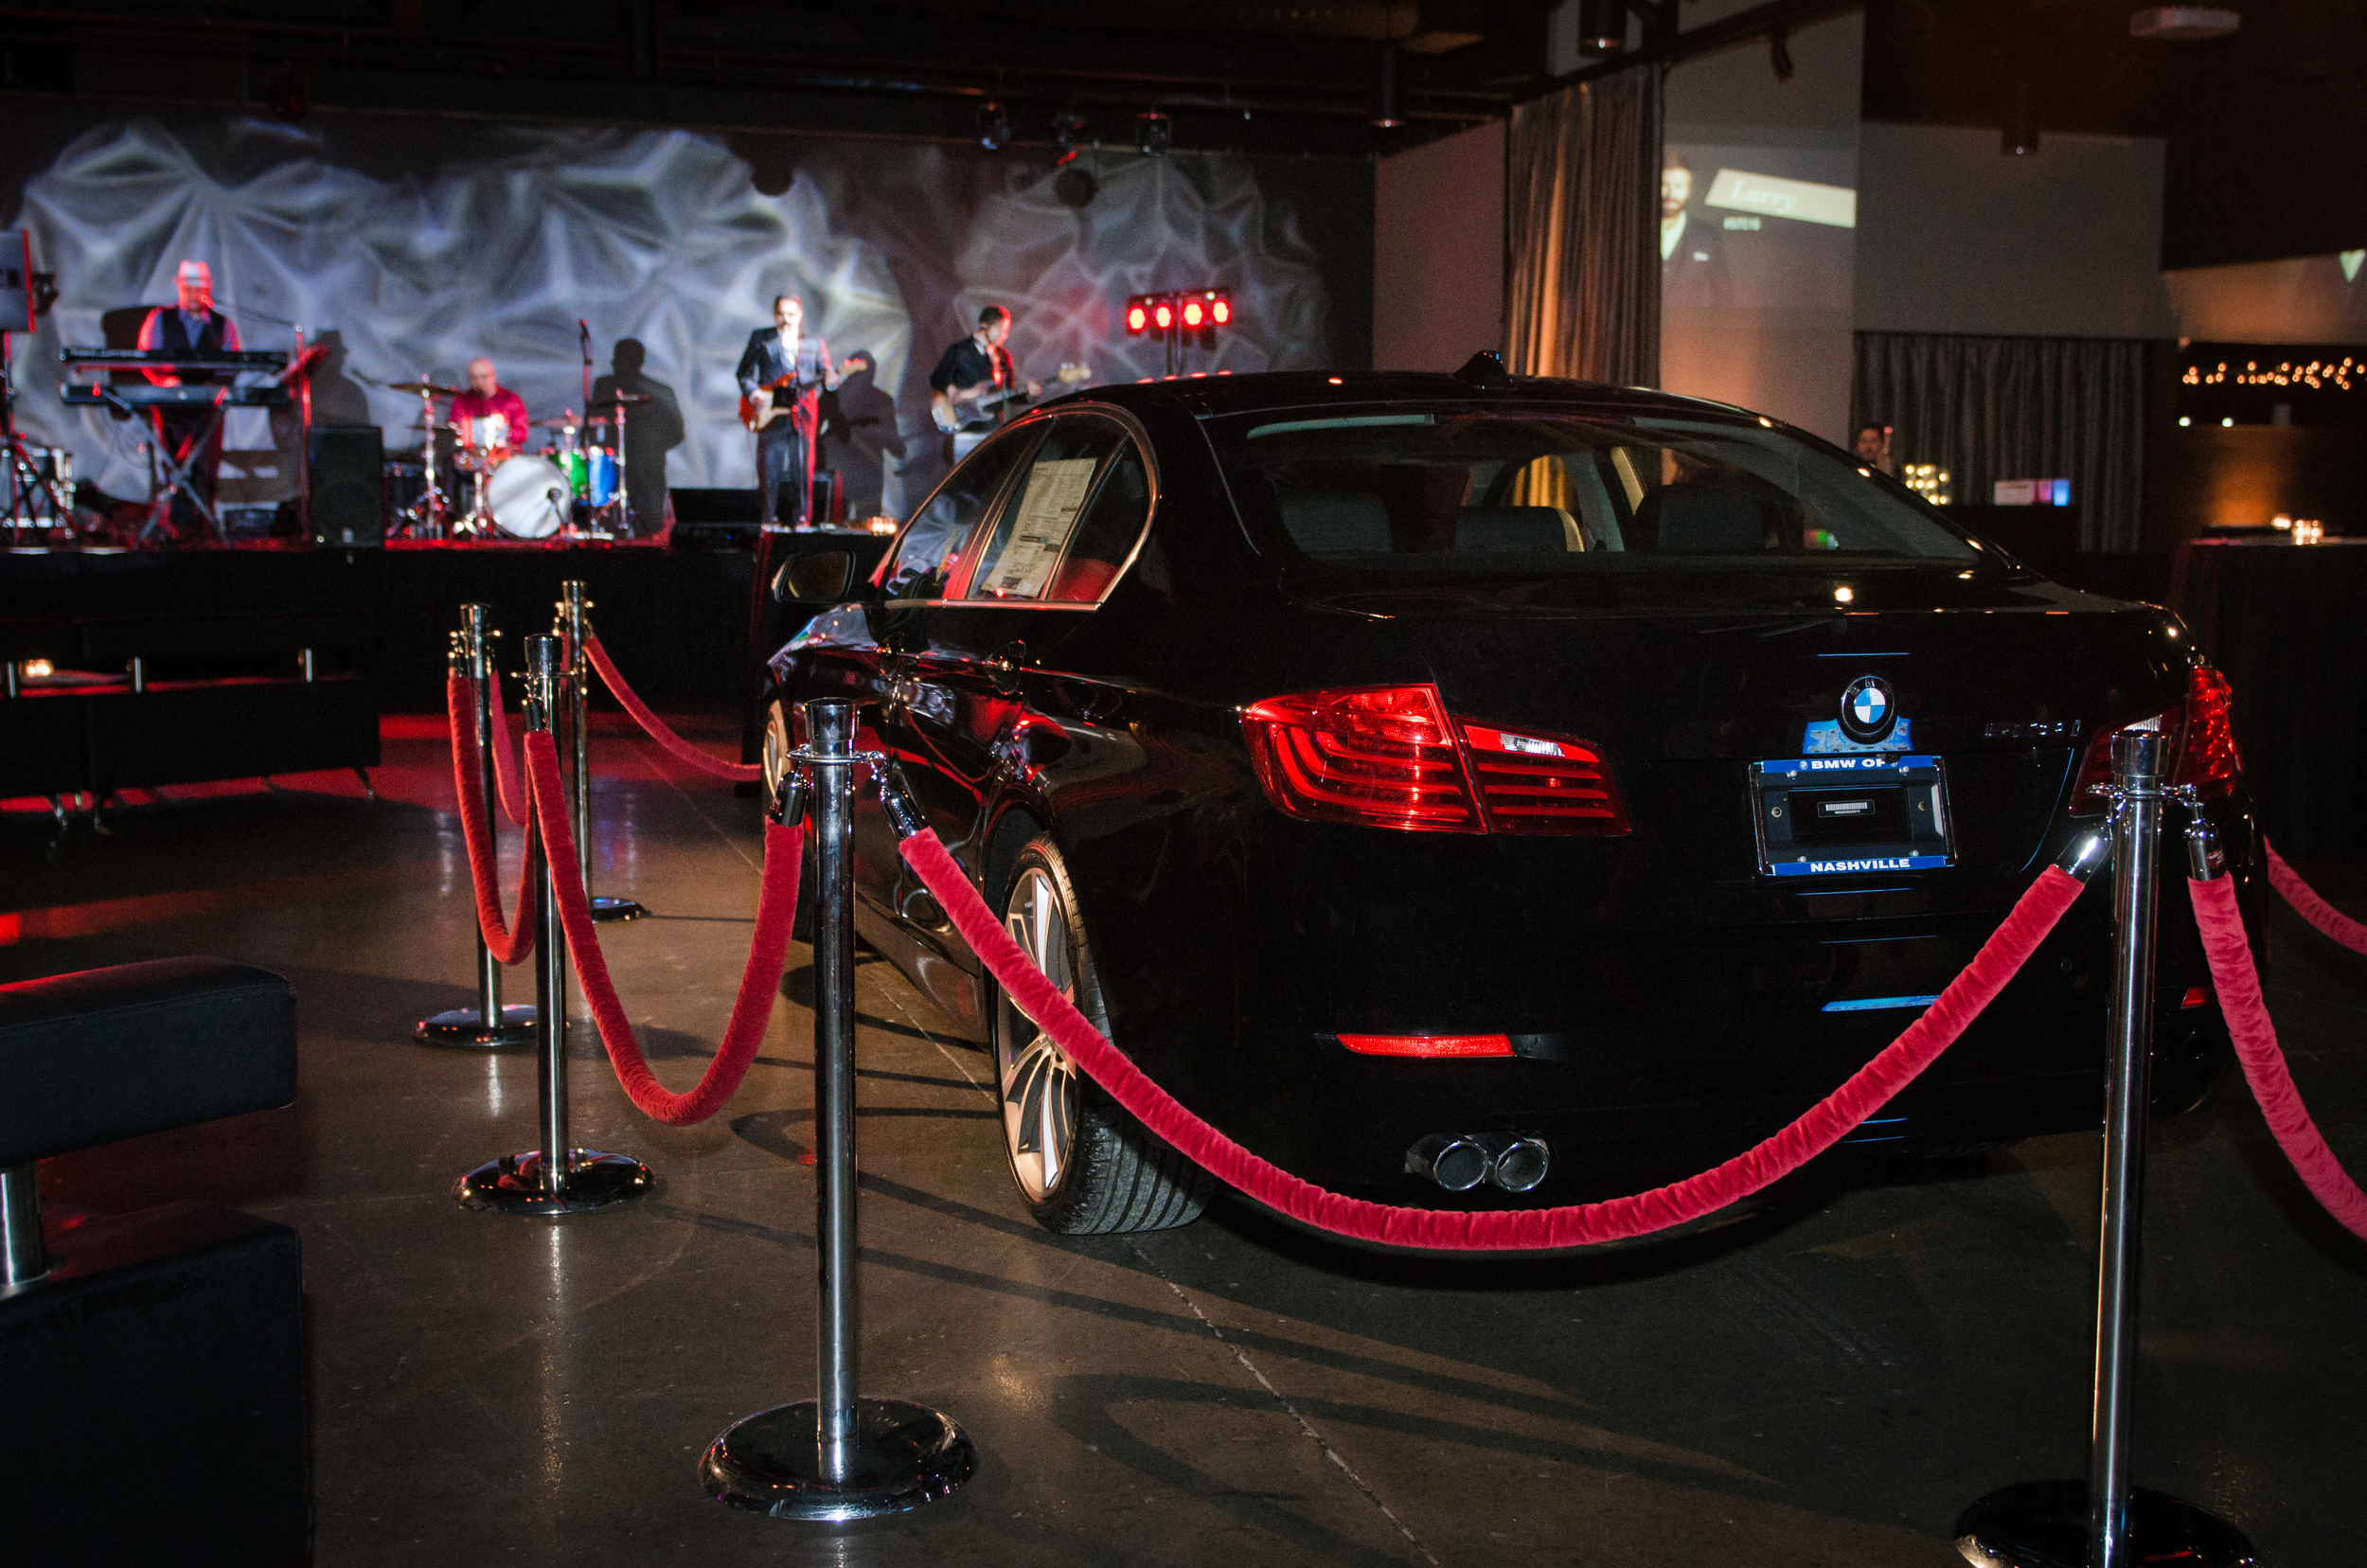 A BMW car was immersed in the middle of the room at The Rosewall